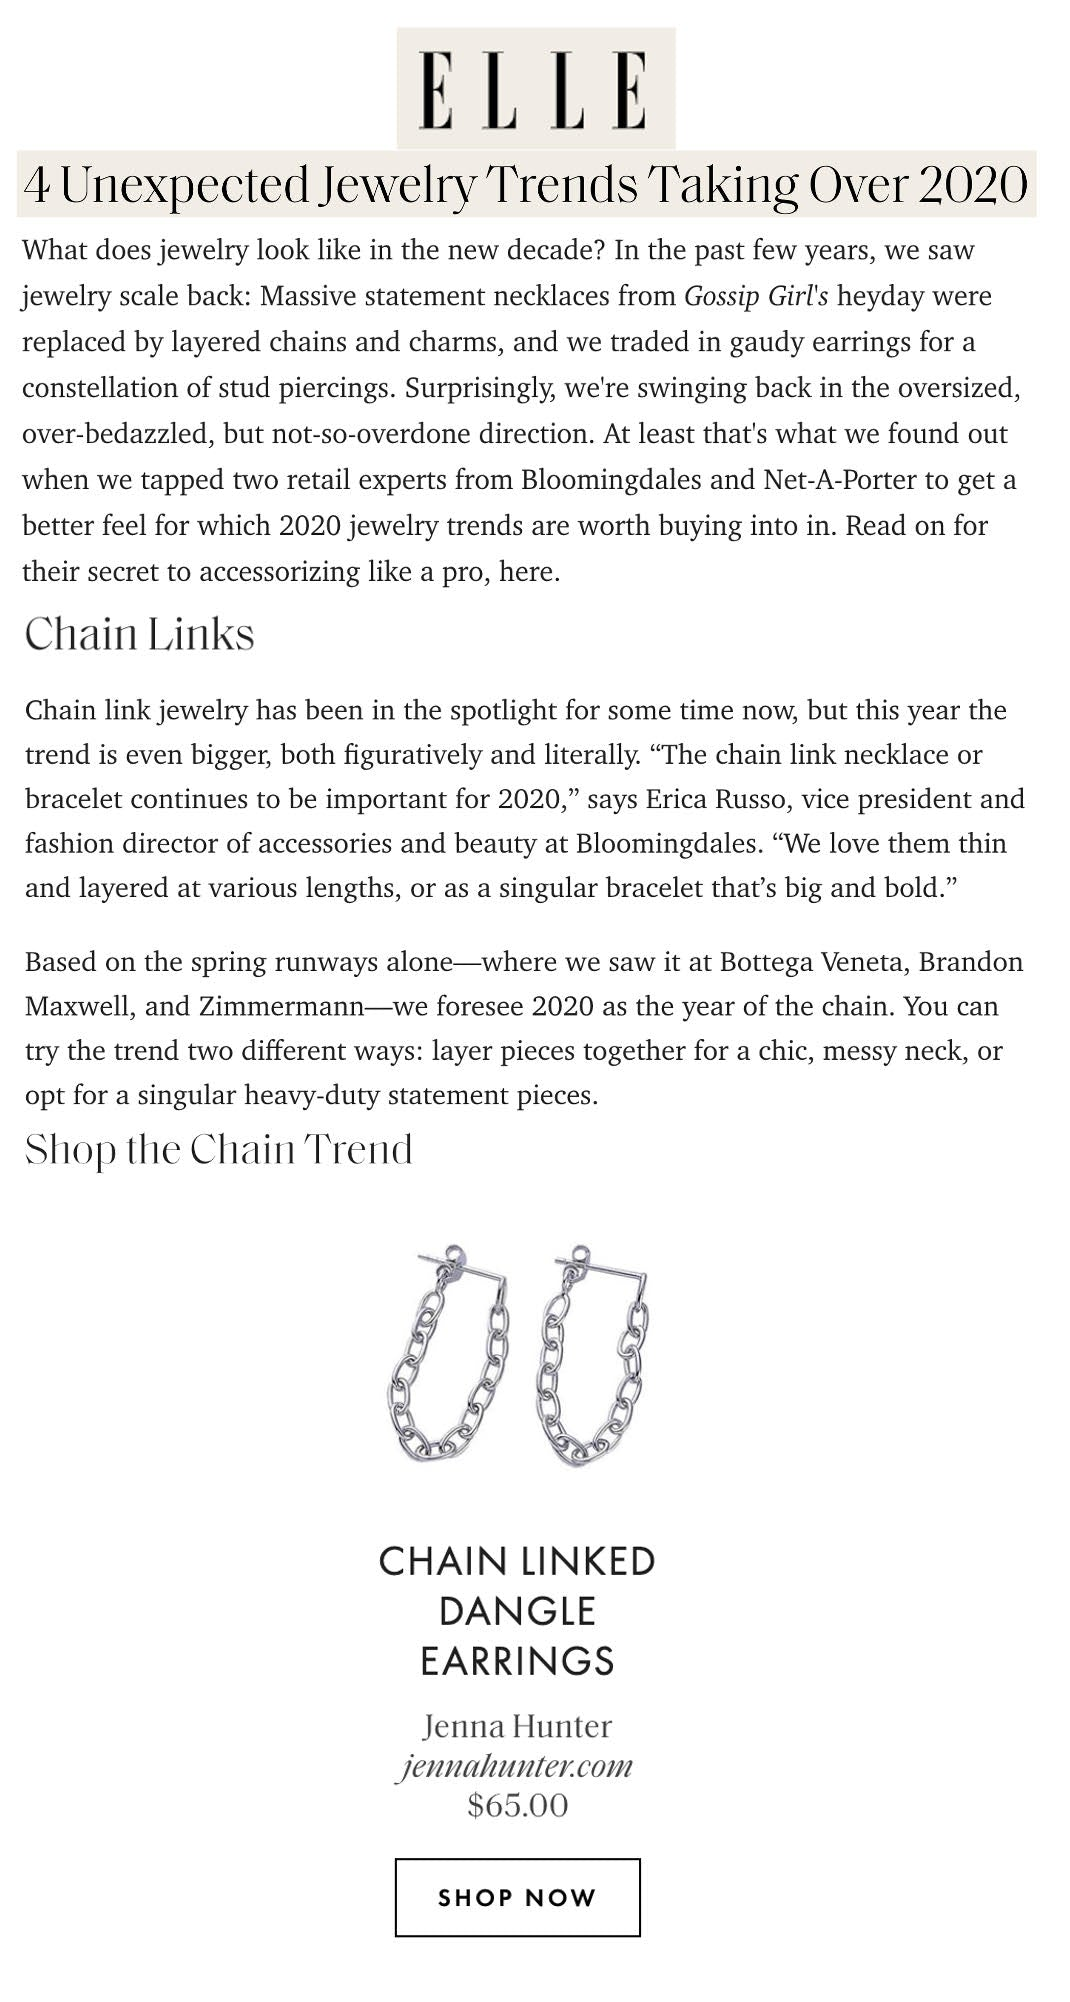 Elle 4 unexpected jewelry trends taking over 2020